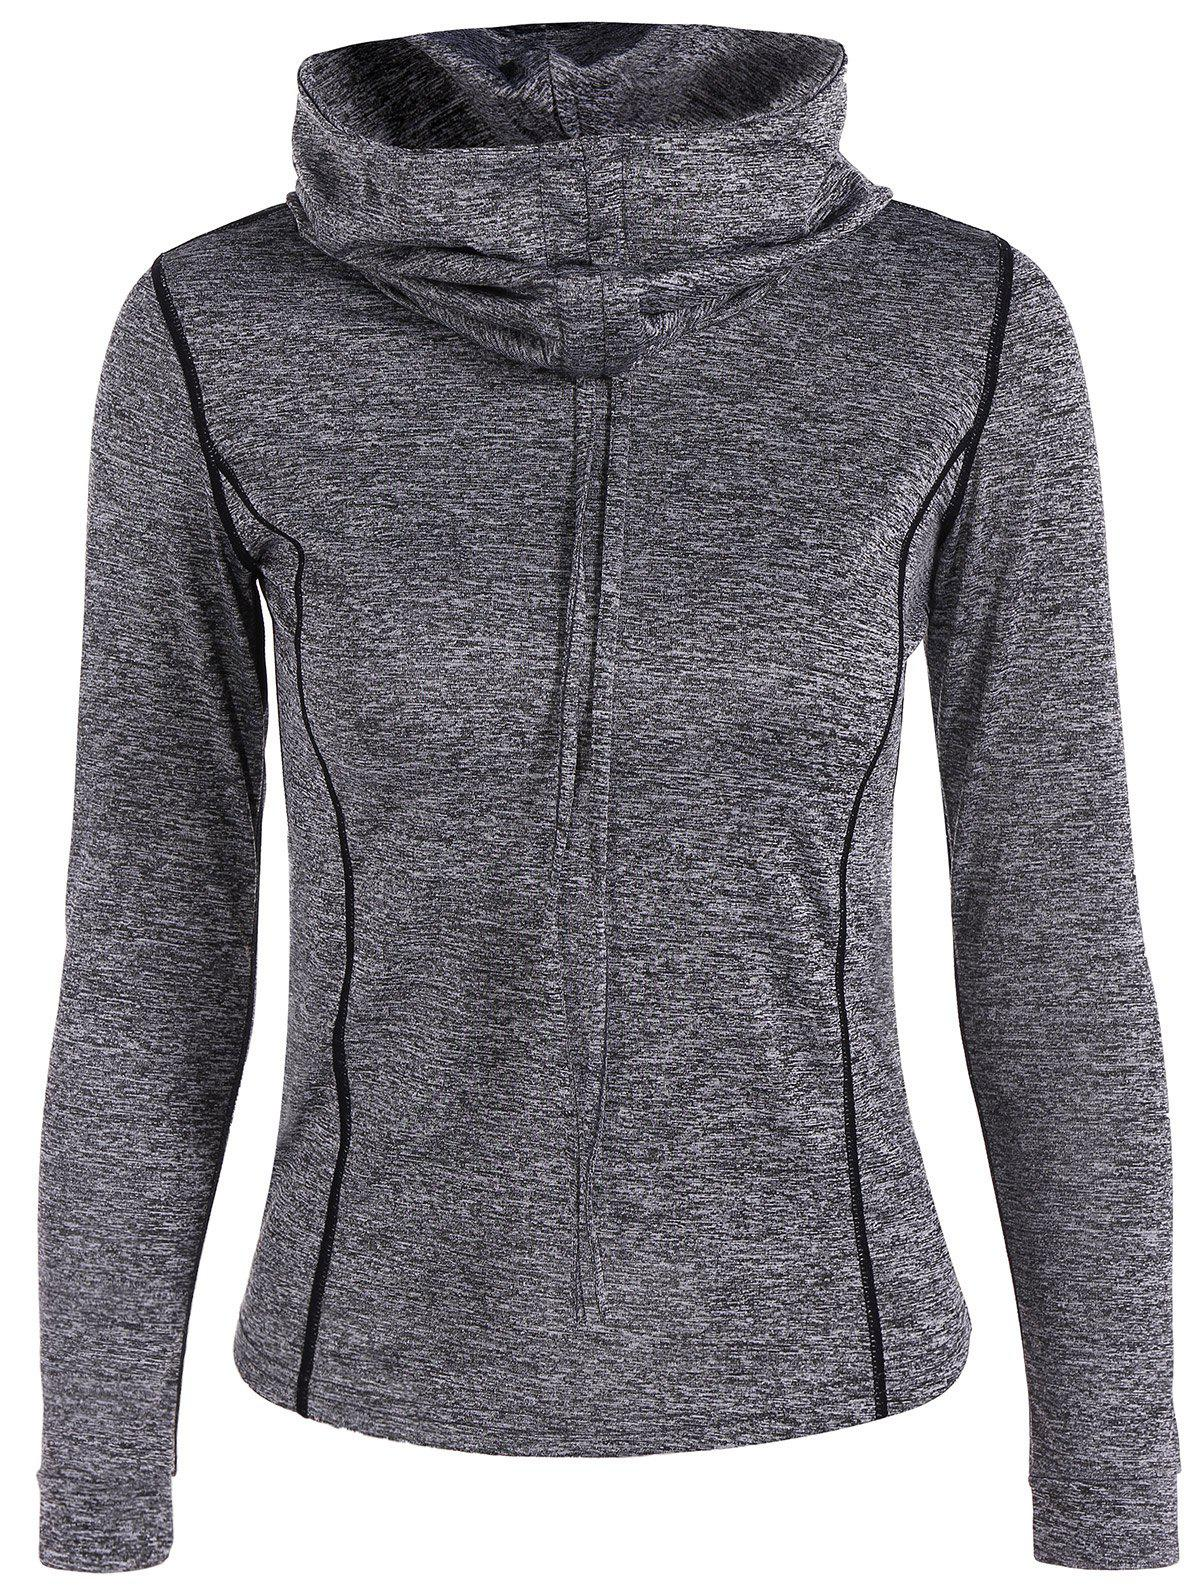 Best Sports Wear Drawstring Hoodie